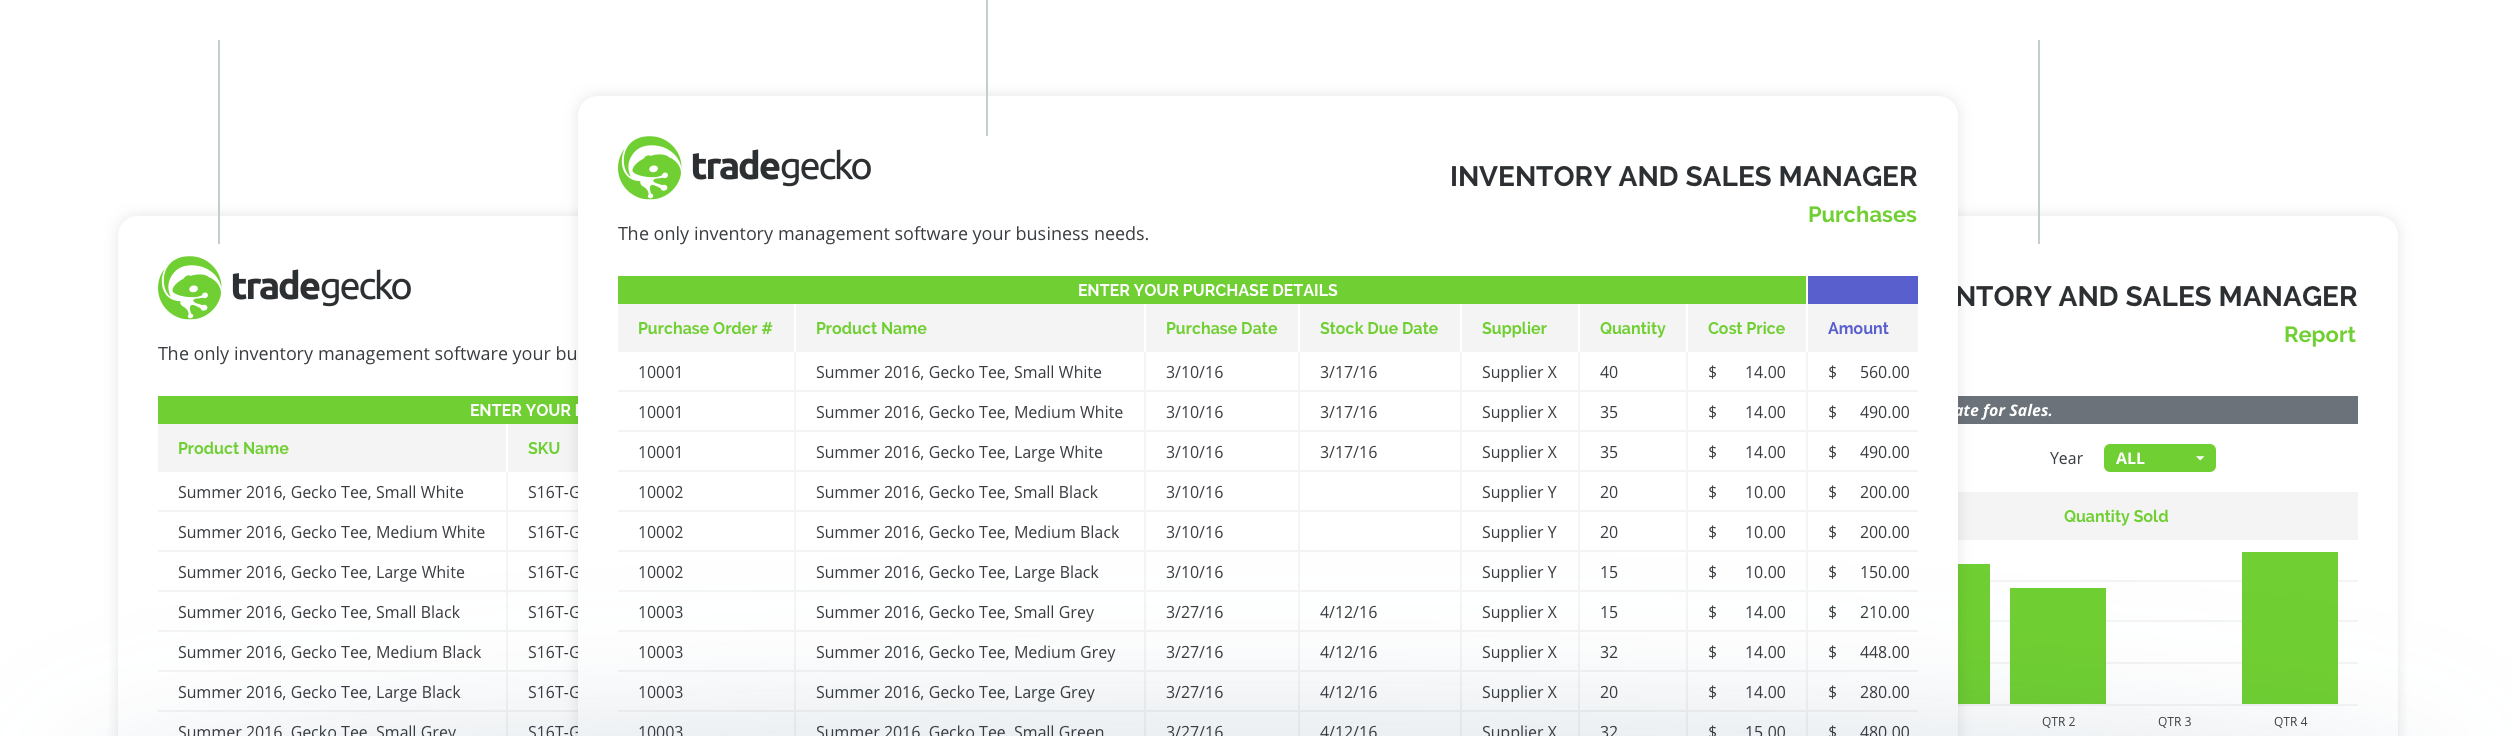 excel-inventory-management-template-preview2x